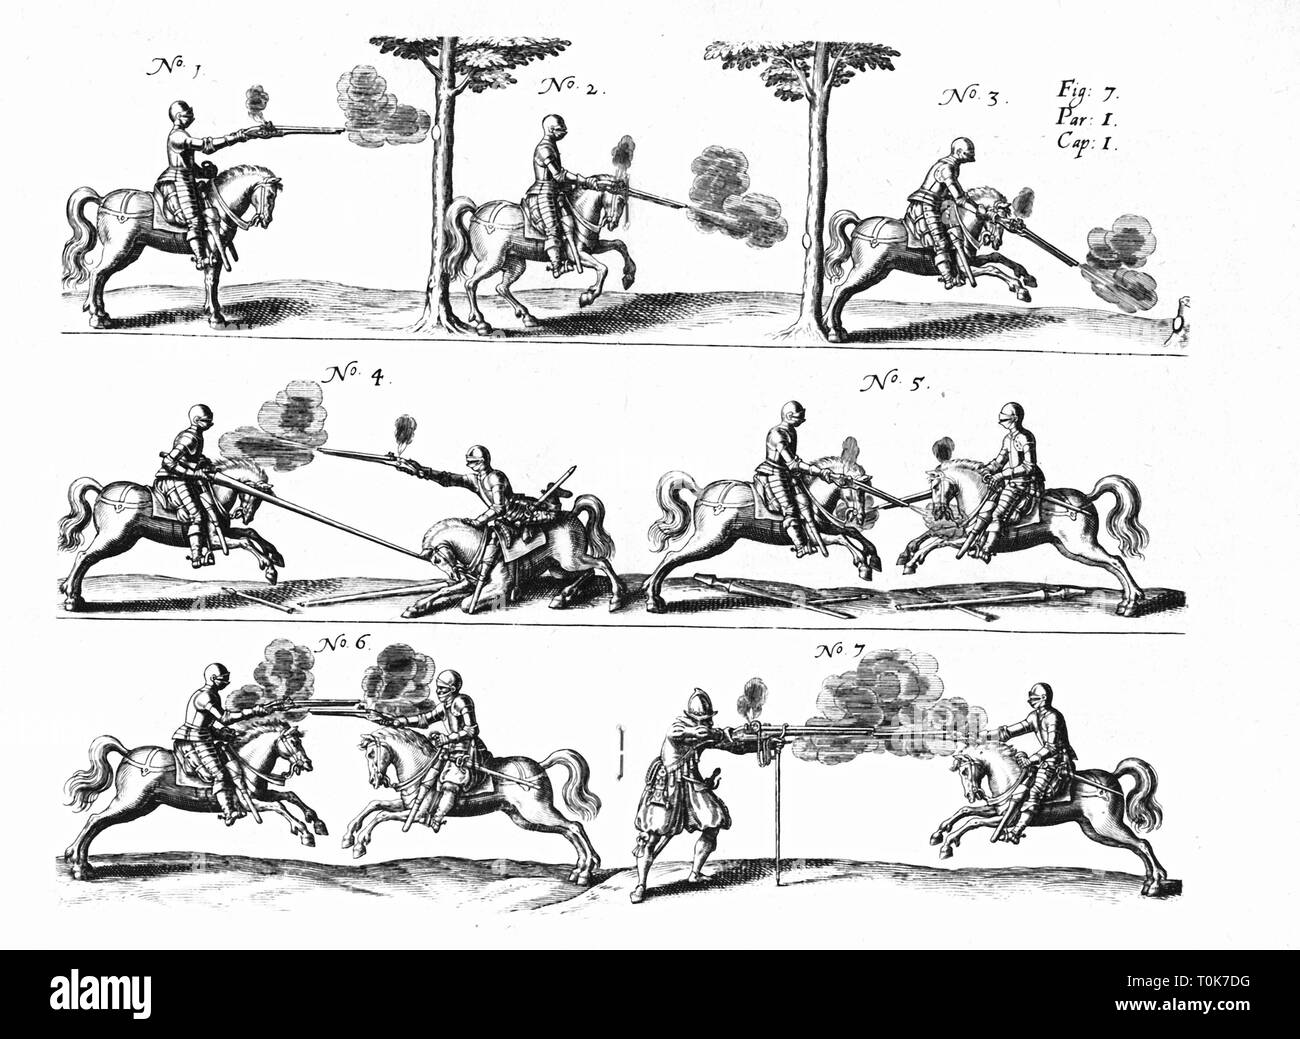 military, knights with firearms, copper engraving, illustration from 'Kriegskunst zu Pferdt' (The Art of War on Horseback), by Johann Jacob von Wallhausen, Frankfurt am Main, Germany, 1616, Additional-Rights-Clearance-Info-Not-Available - Stock Image